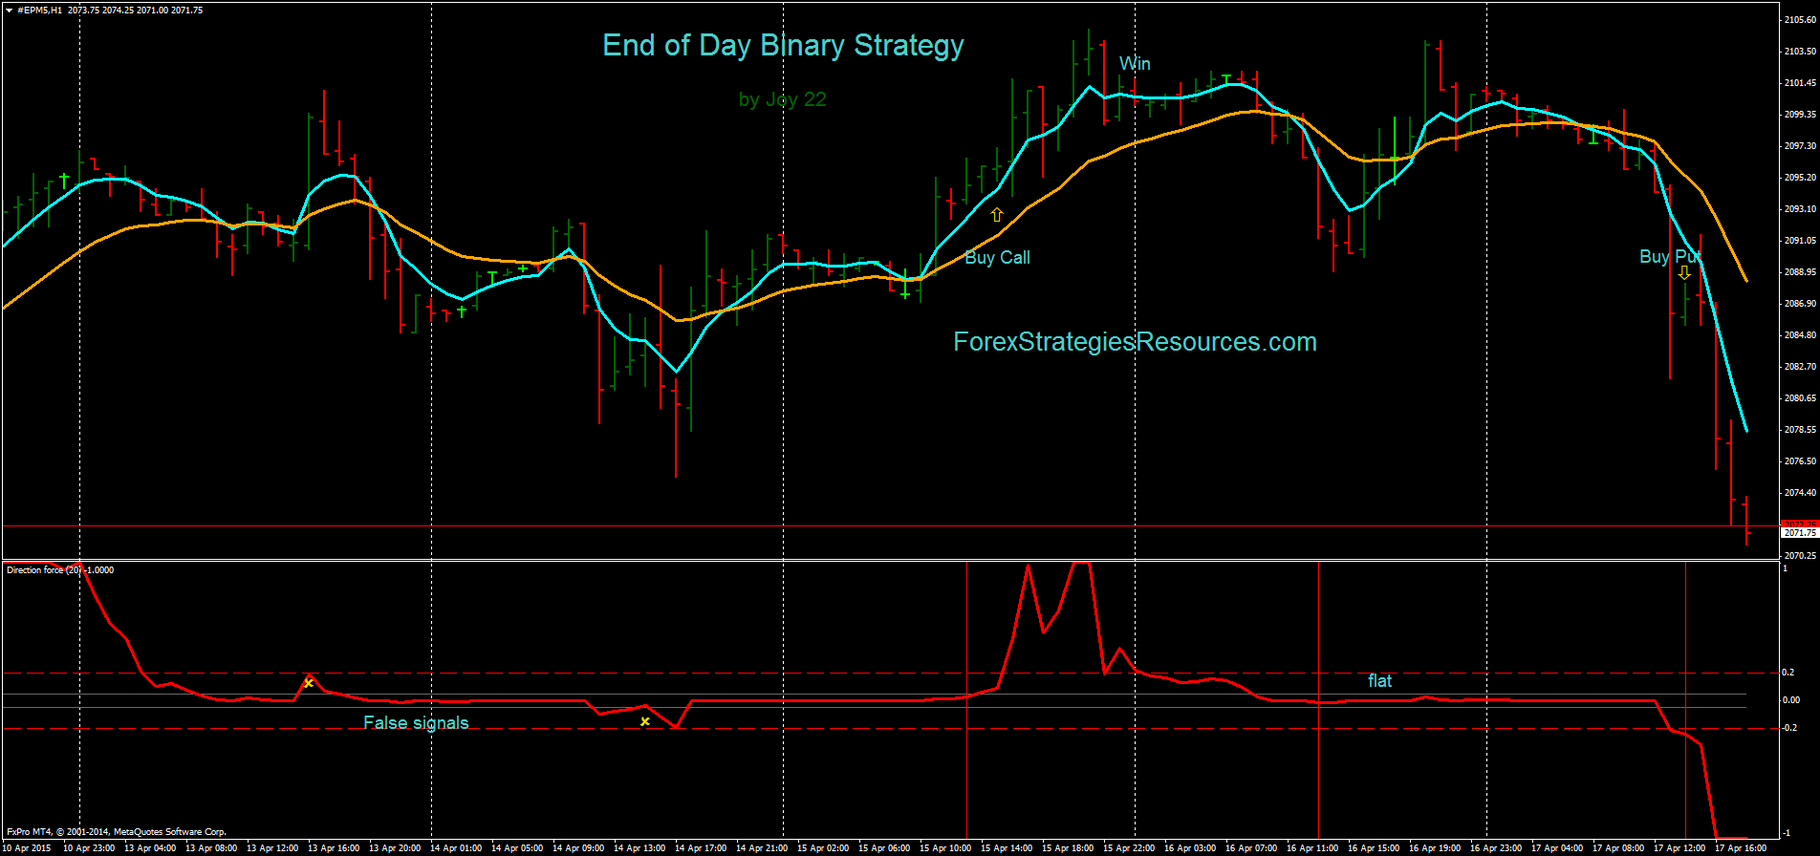 Binary options end of day strategy